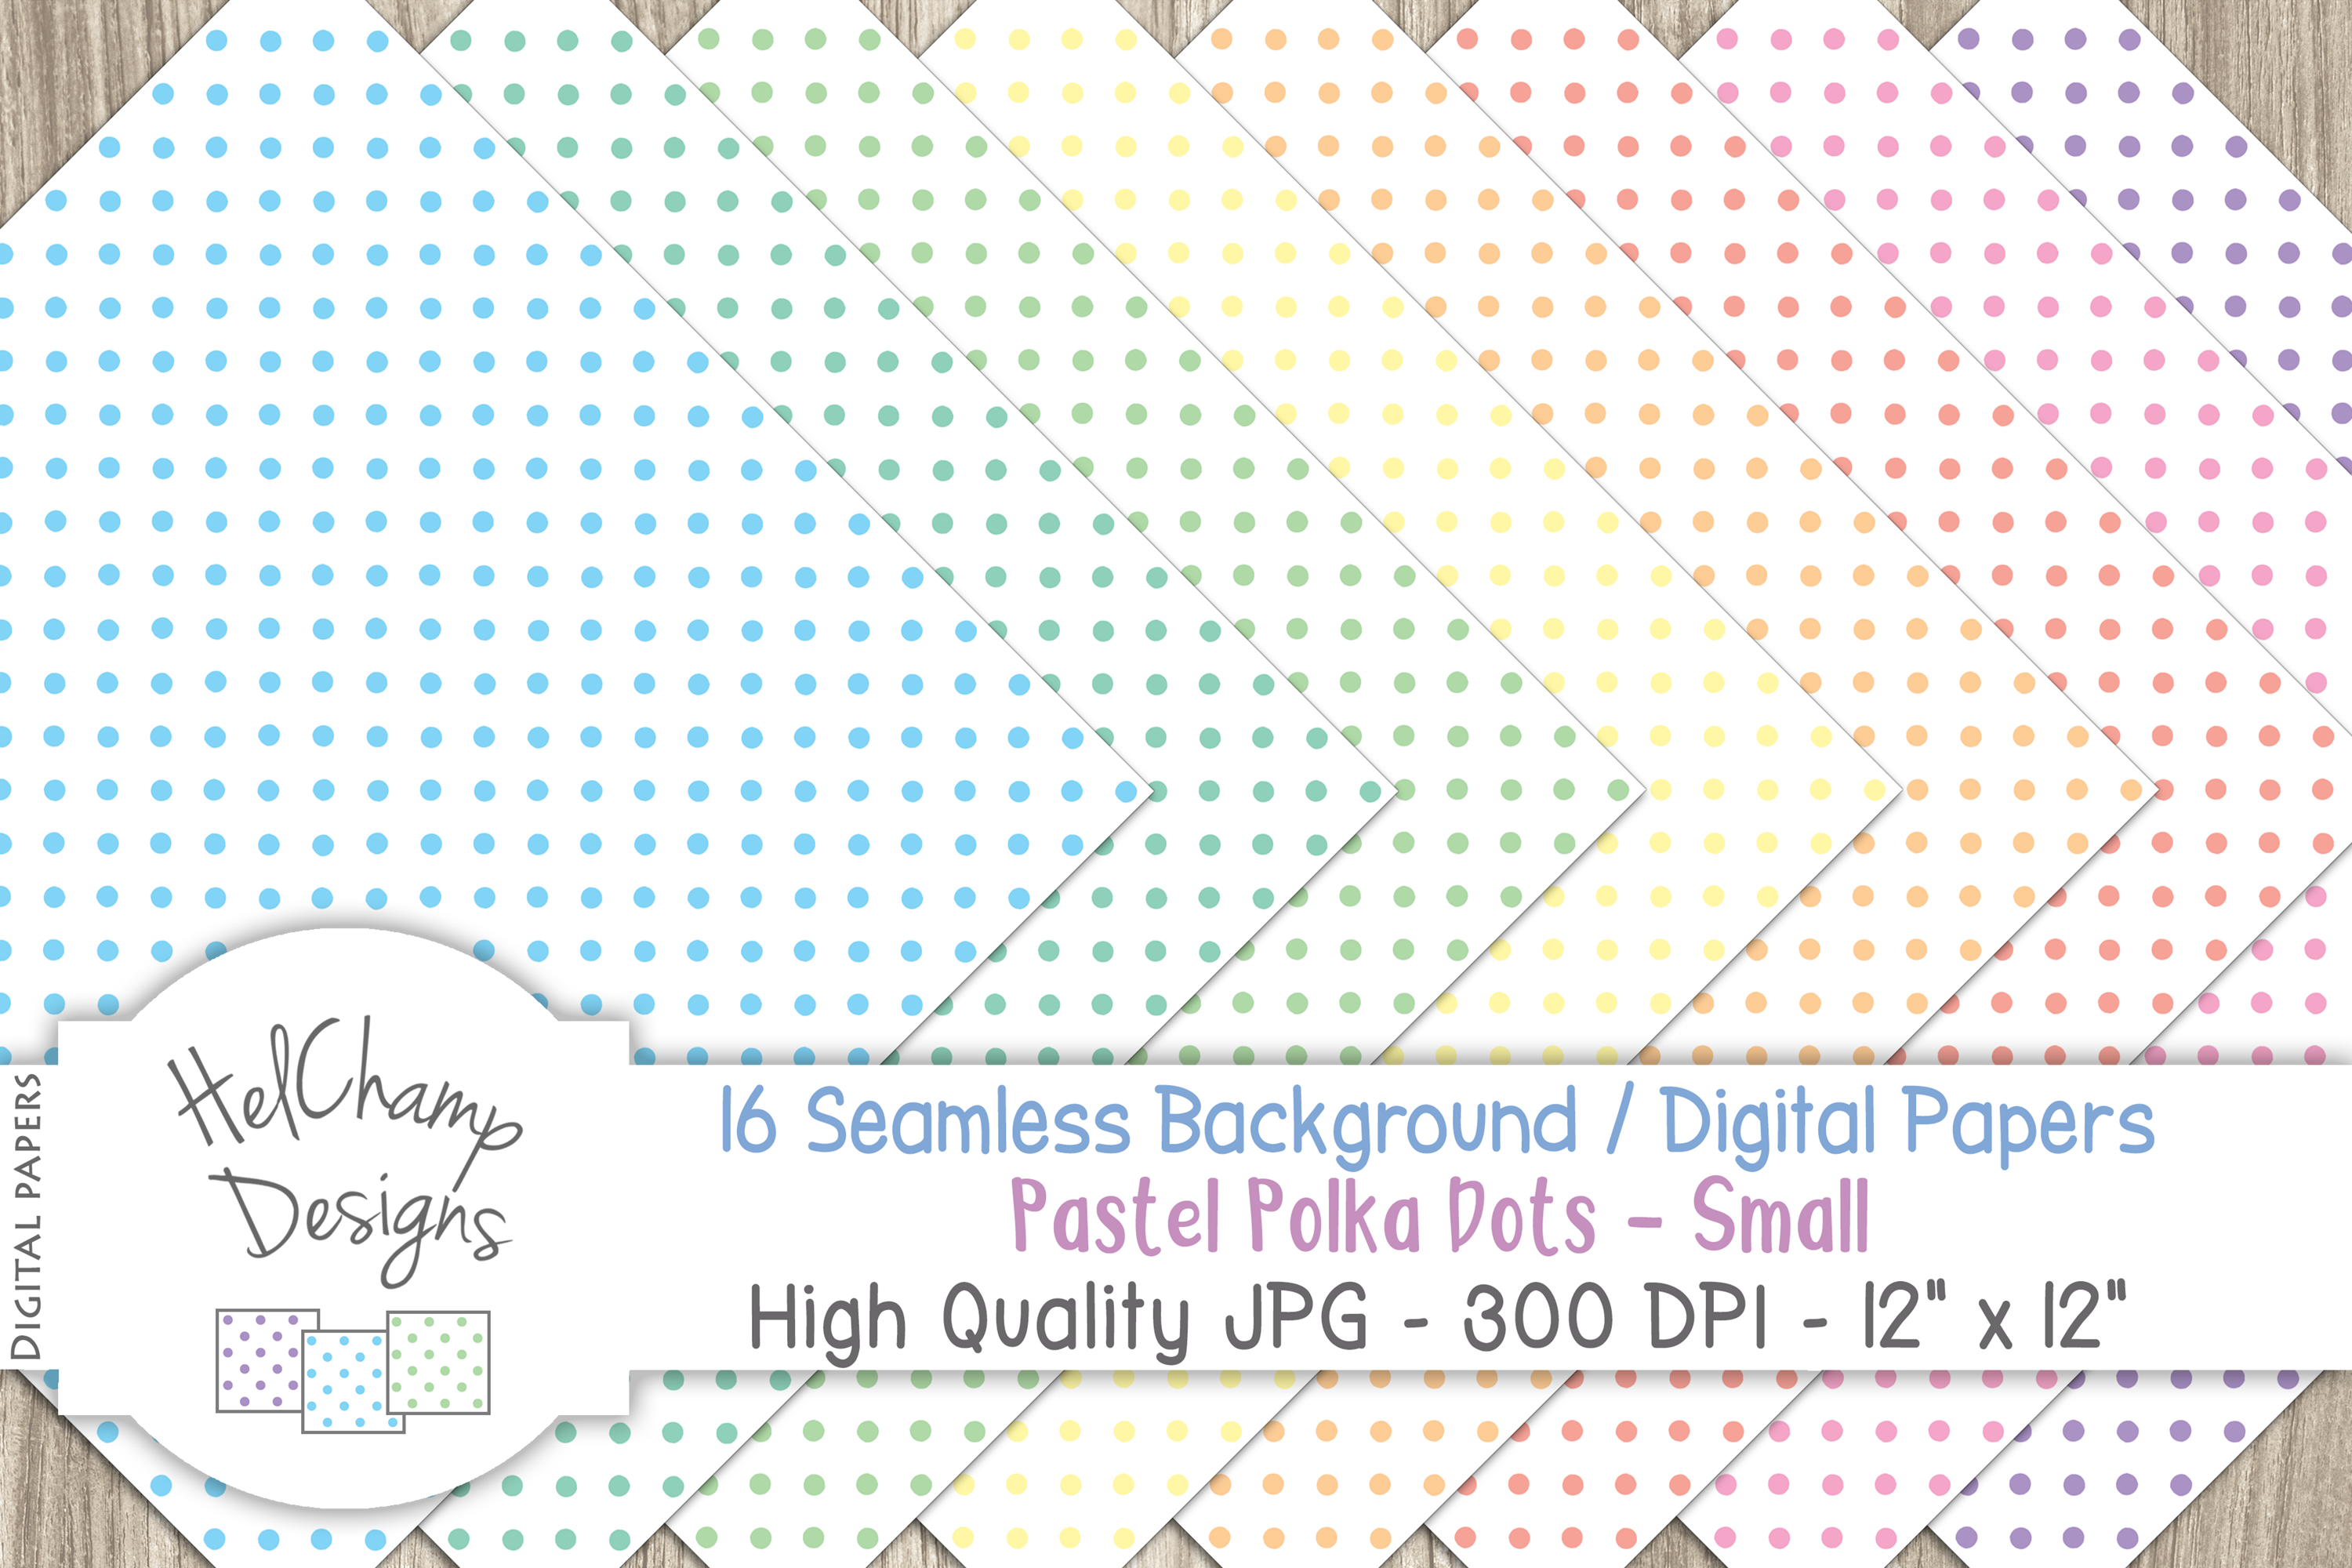 16 seamless Digital Papers - Pastel Polka Dots Small - HC009 example image 5